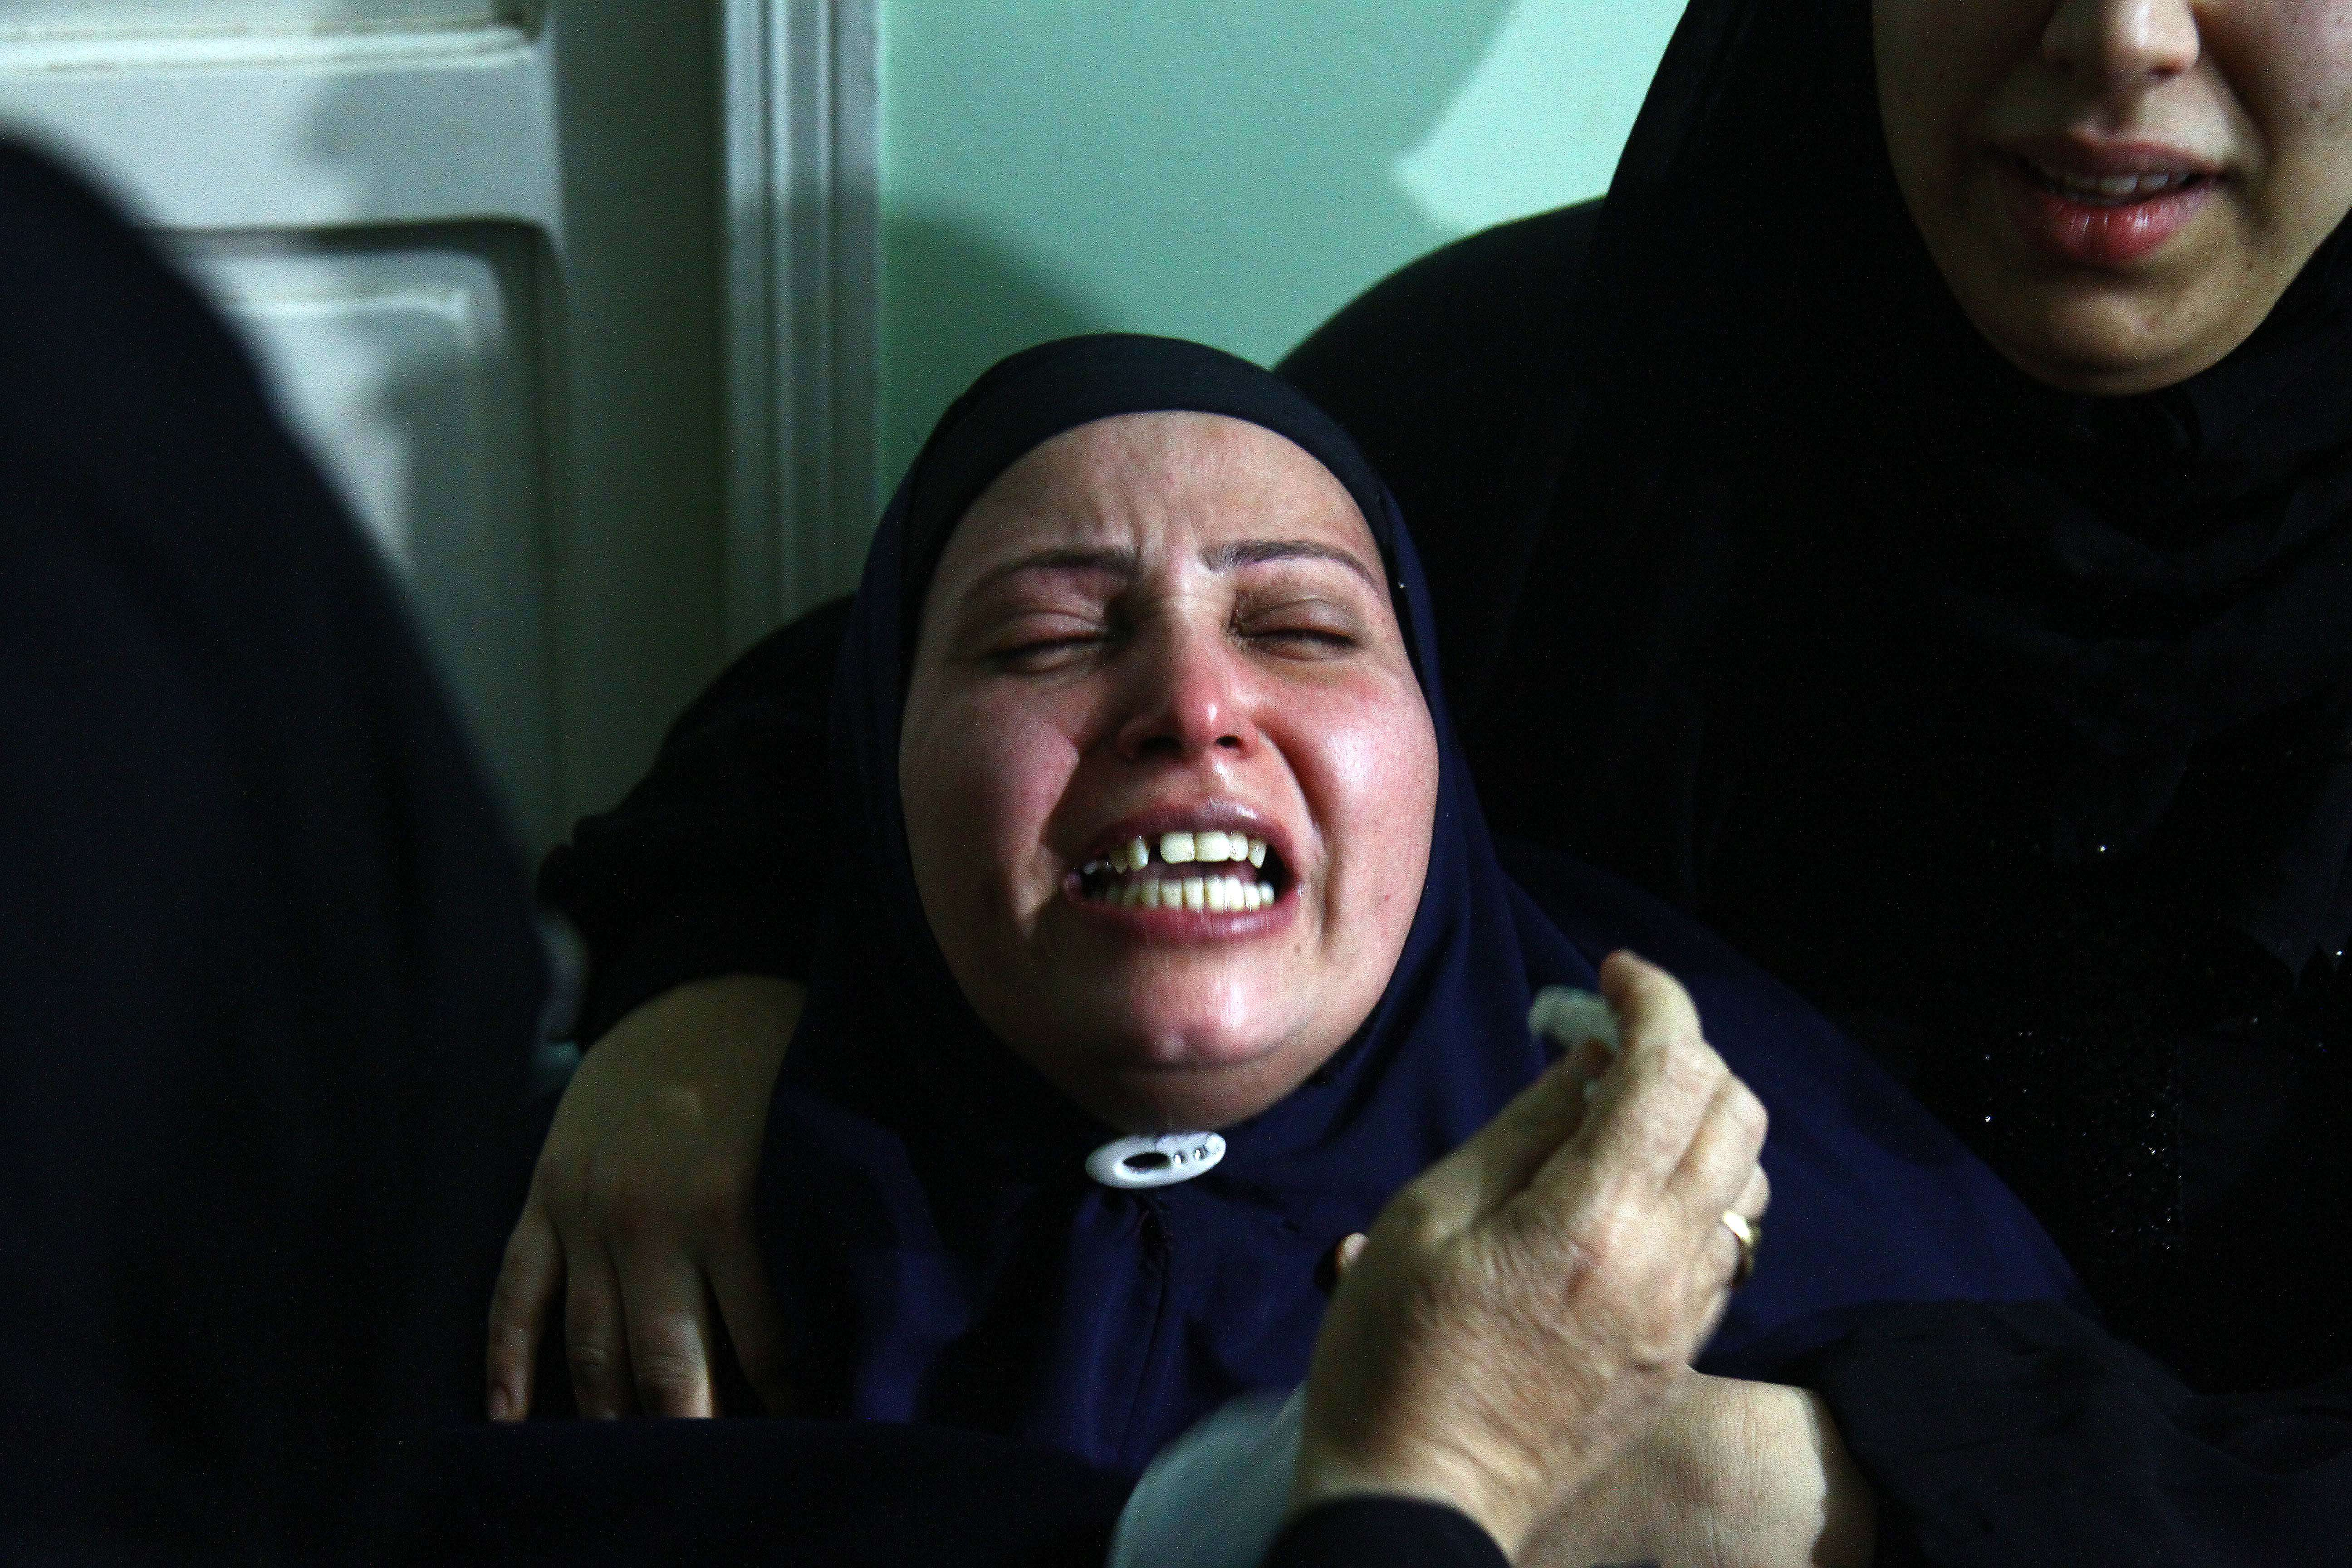 Mother of Egyptian journalist Mayada Ashraf weeps during her daughters' funeral in Estanhaa village at El-Monofia, 70 km north of Cairo, on March 29, 2014. Al-Dustour, a privately-owned newspaper, said on its website that its journalist Mayada was killed while covering clashes in the northern Cairo neighbourhood of Ein Shams.  (AFP PHOTO / AHMED MAHMOUD)